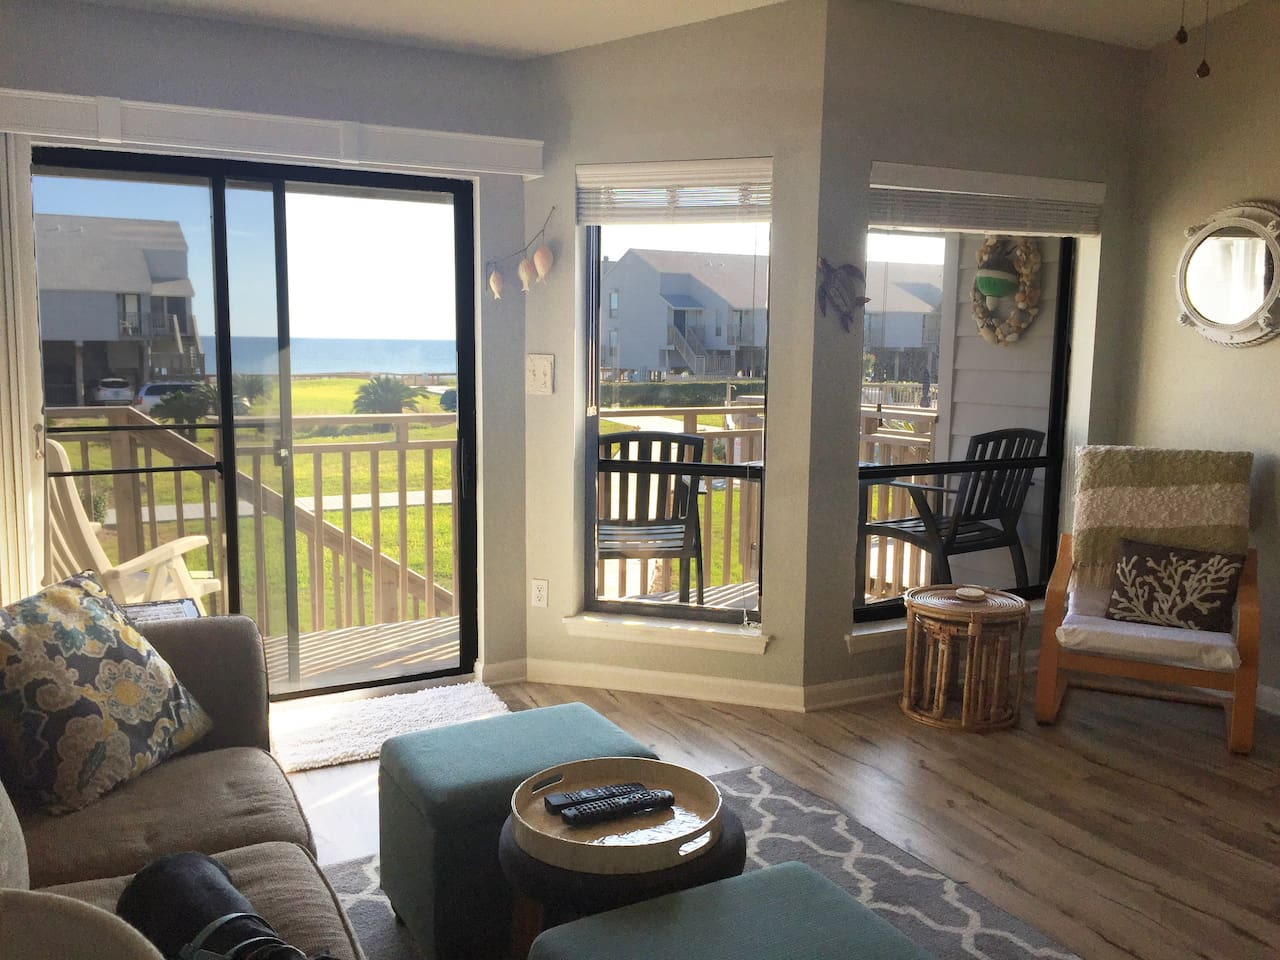 Want to enjoy the view, but don't feel like leaving the couch?  Our place offers great ocean view from the living and kitchen area.